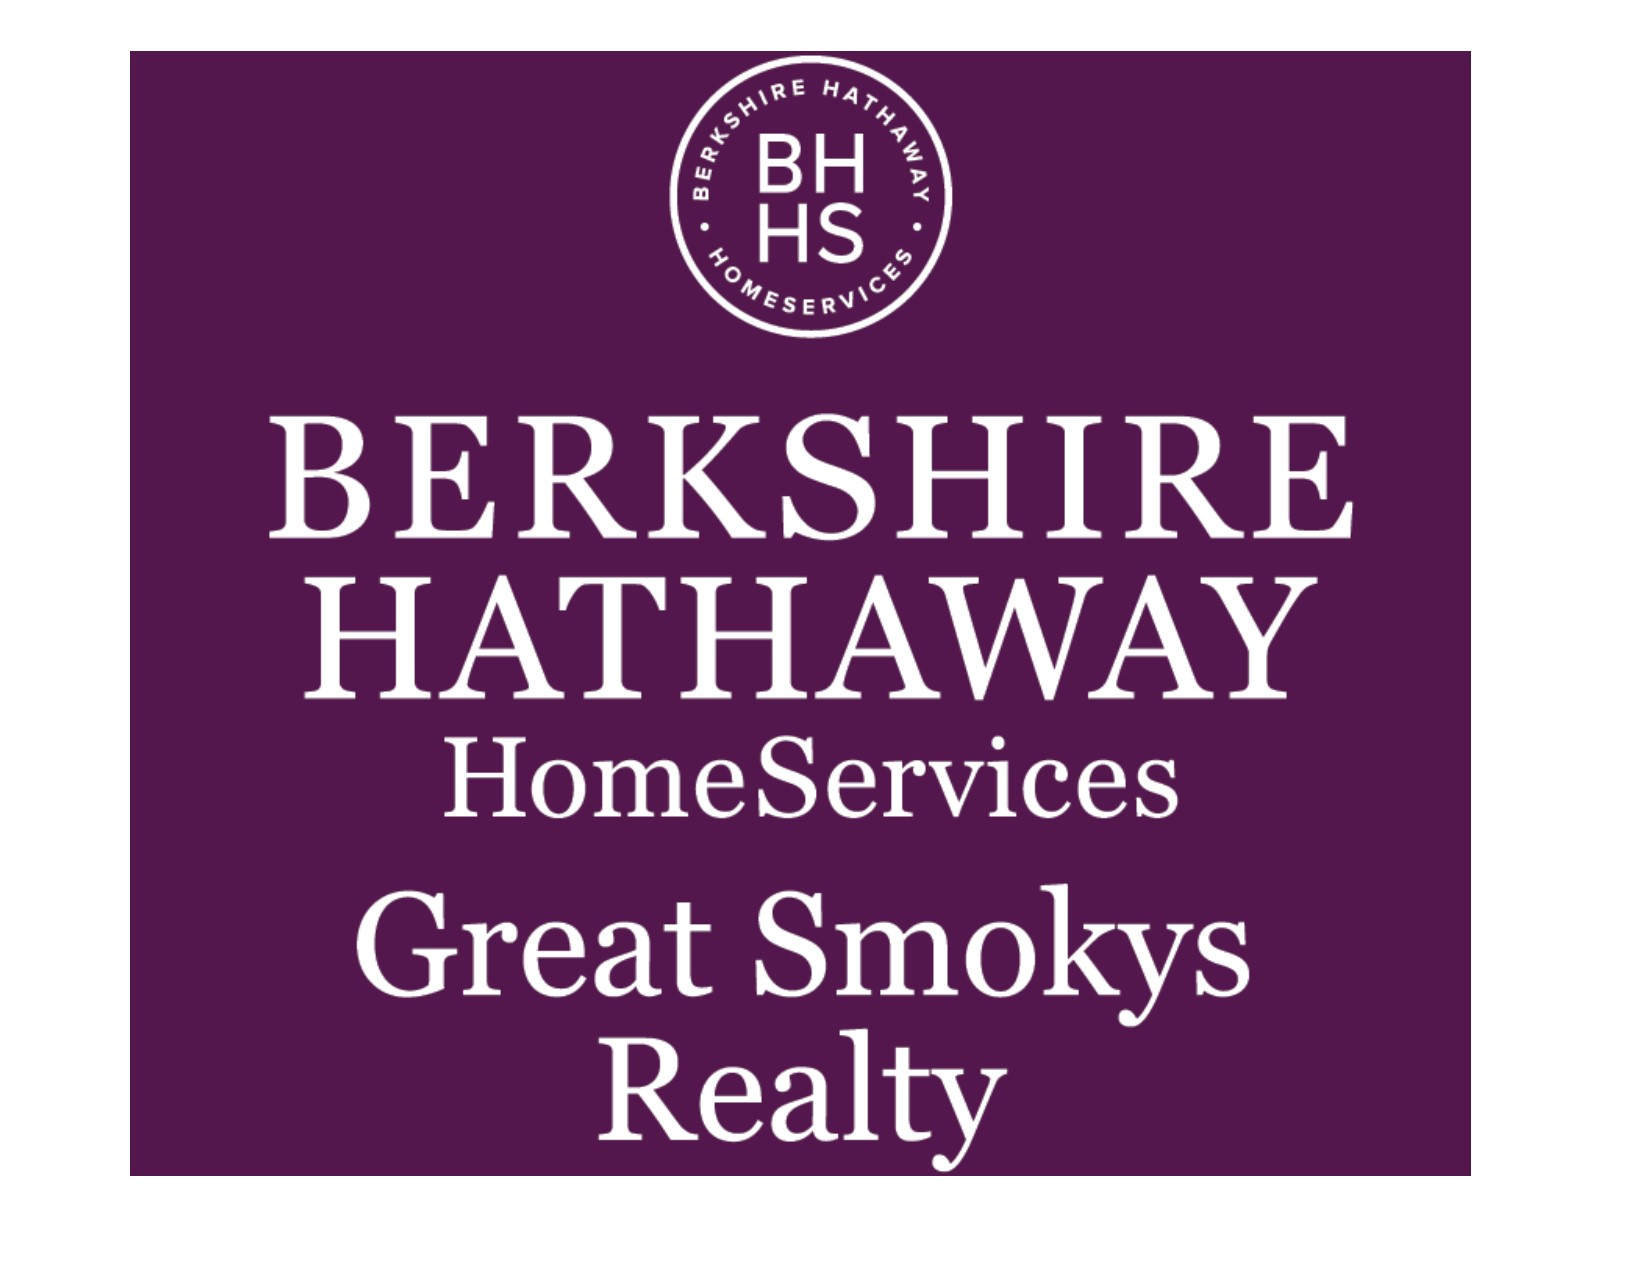 berkshire hathaway home services - great smokys realty